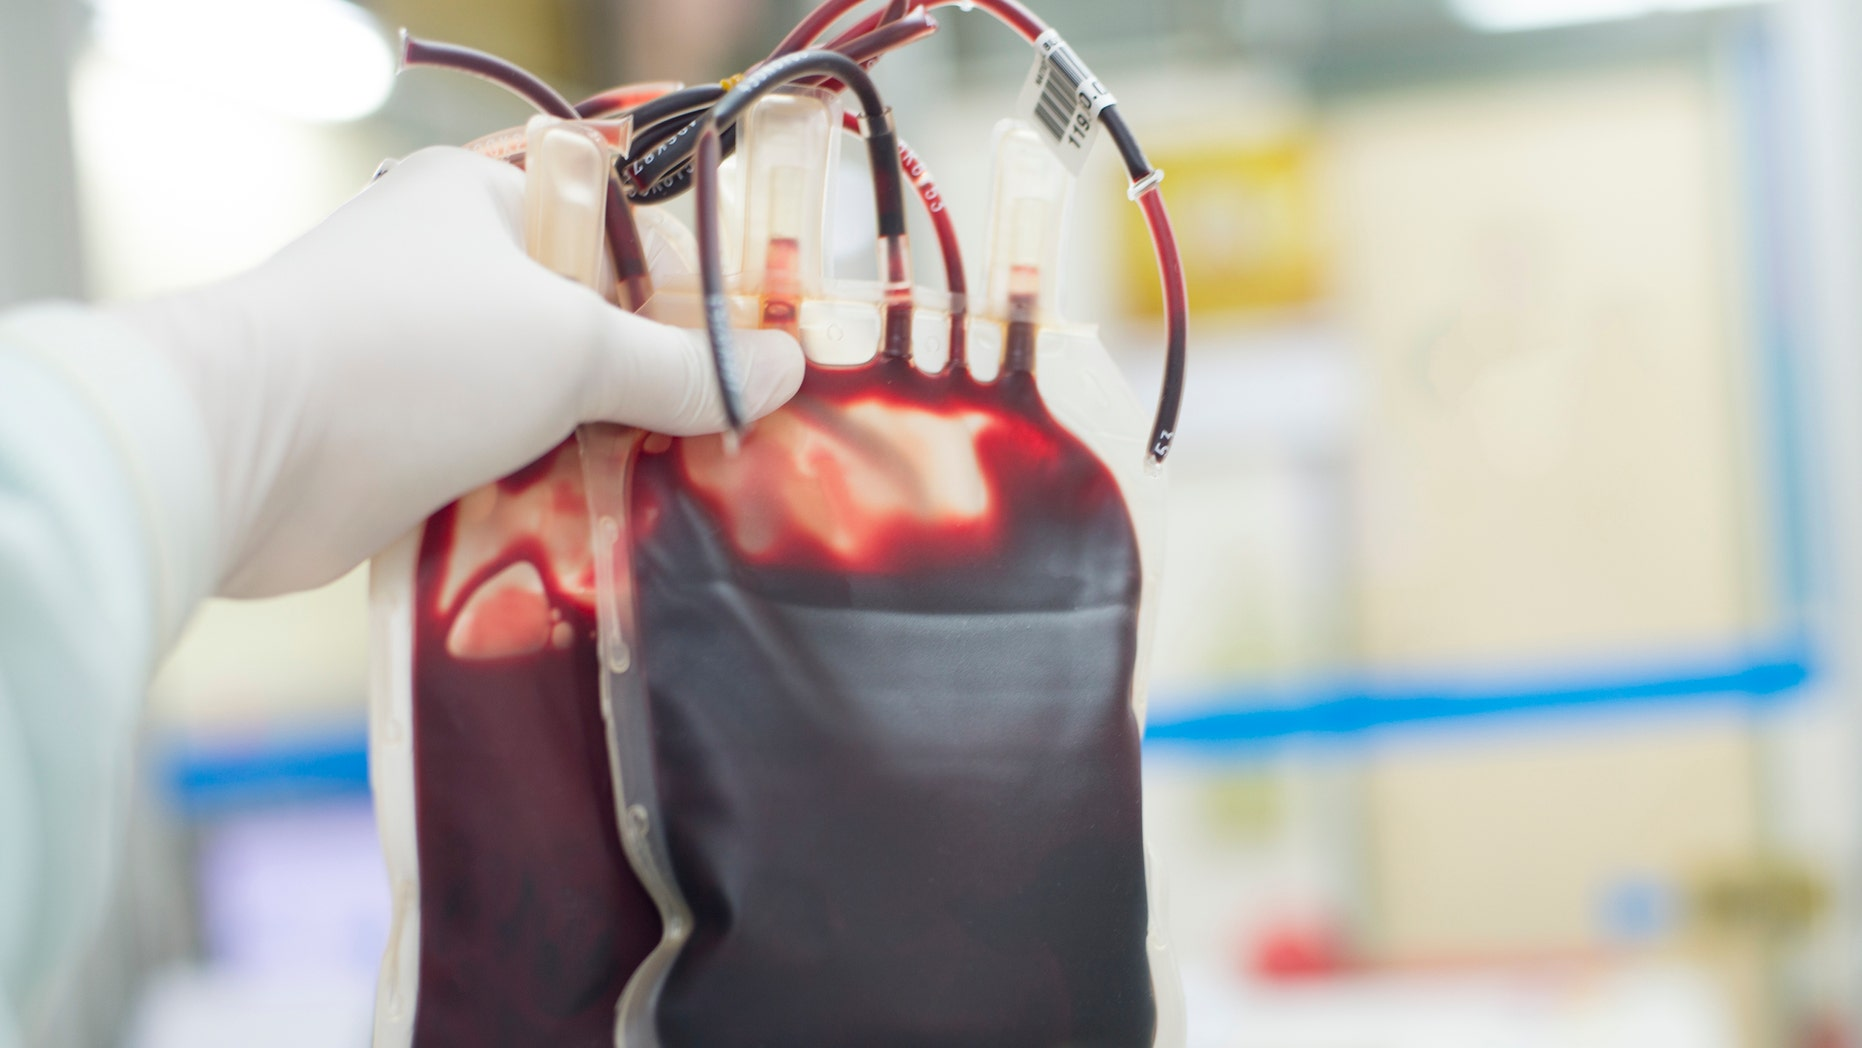 FDA Warns Consumers against Use of Young Blood Infusion, Fears Cardiovascular Reactions